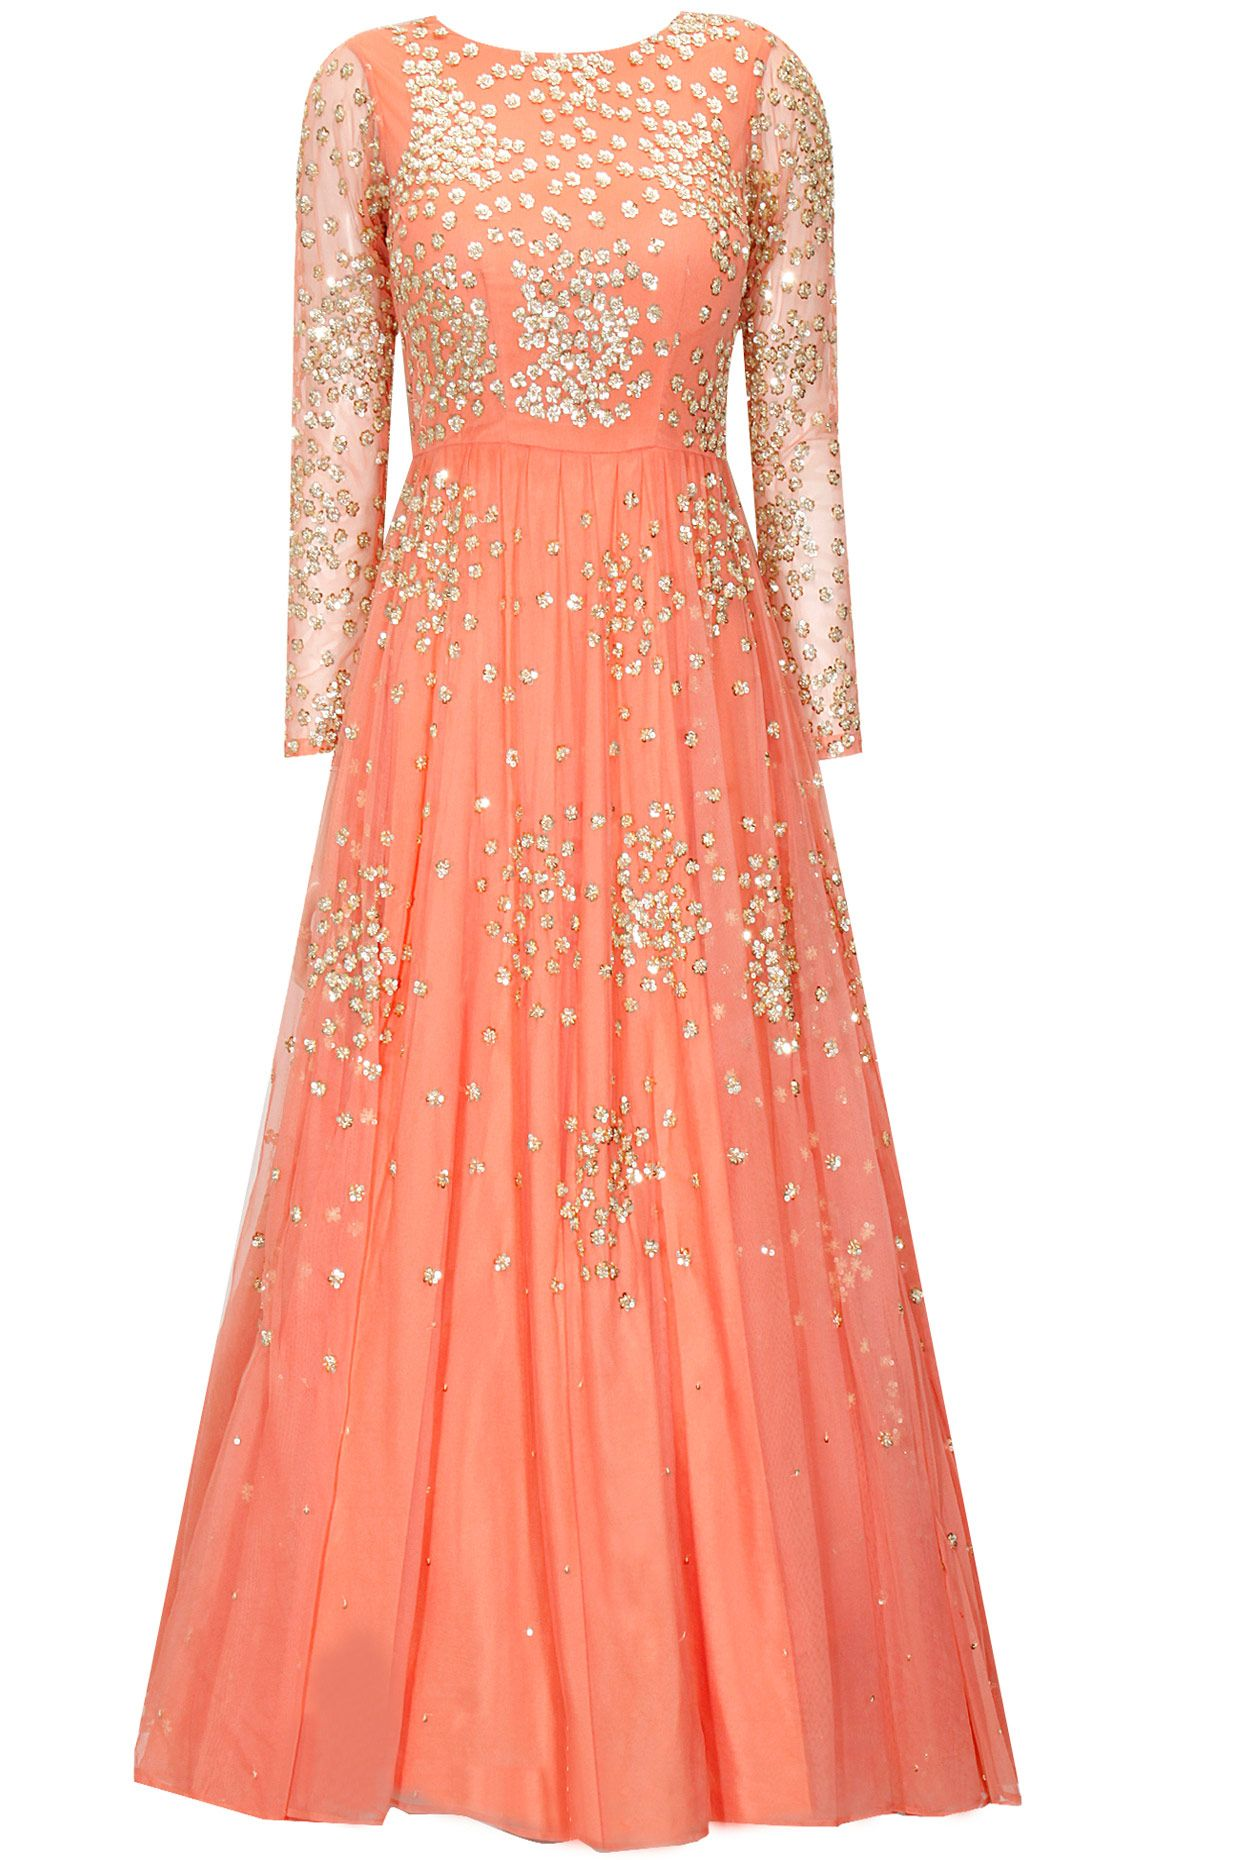 0b84ebf1b394 Coral peach shimmer anarkali gown available only at Pernia's Pop-Up Shop.